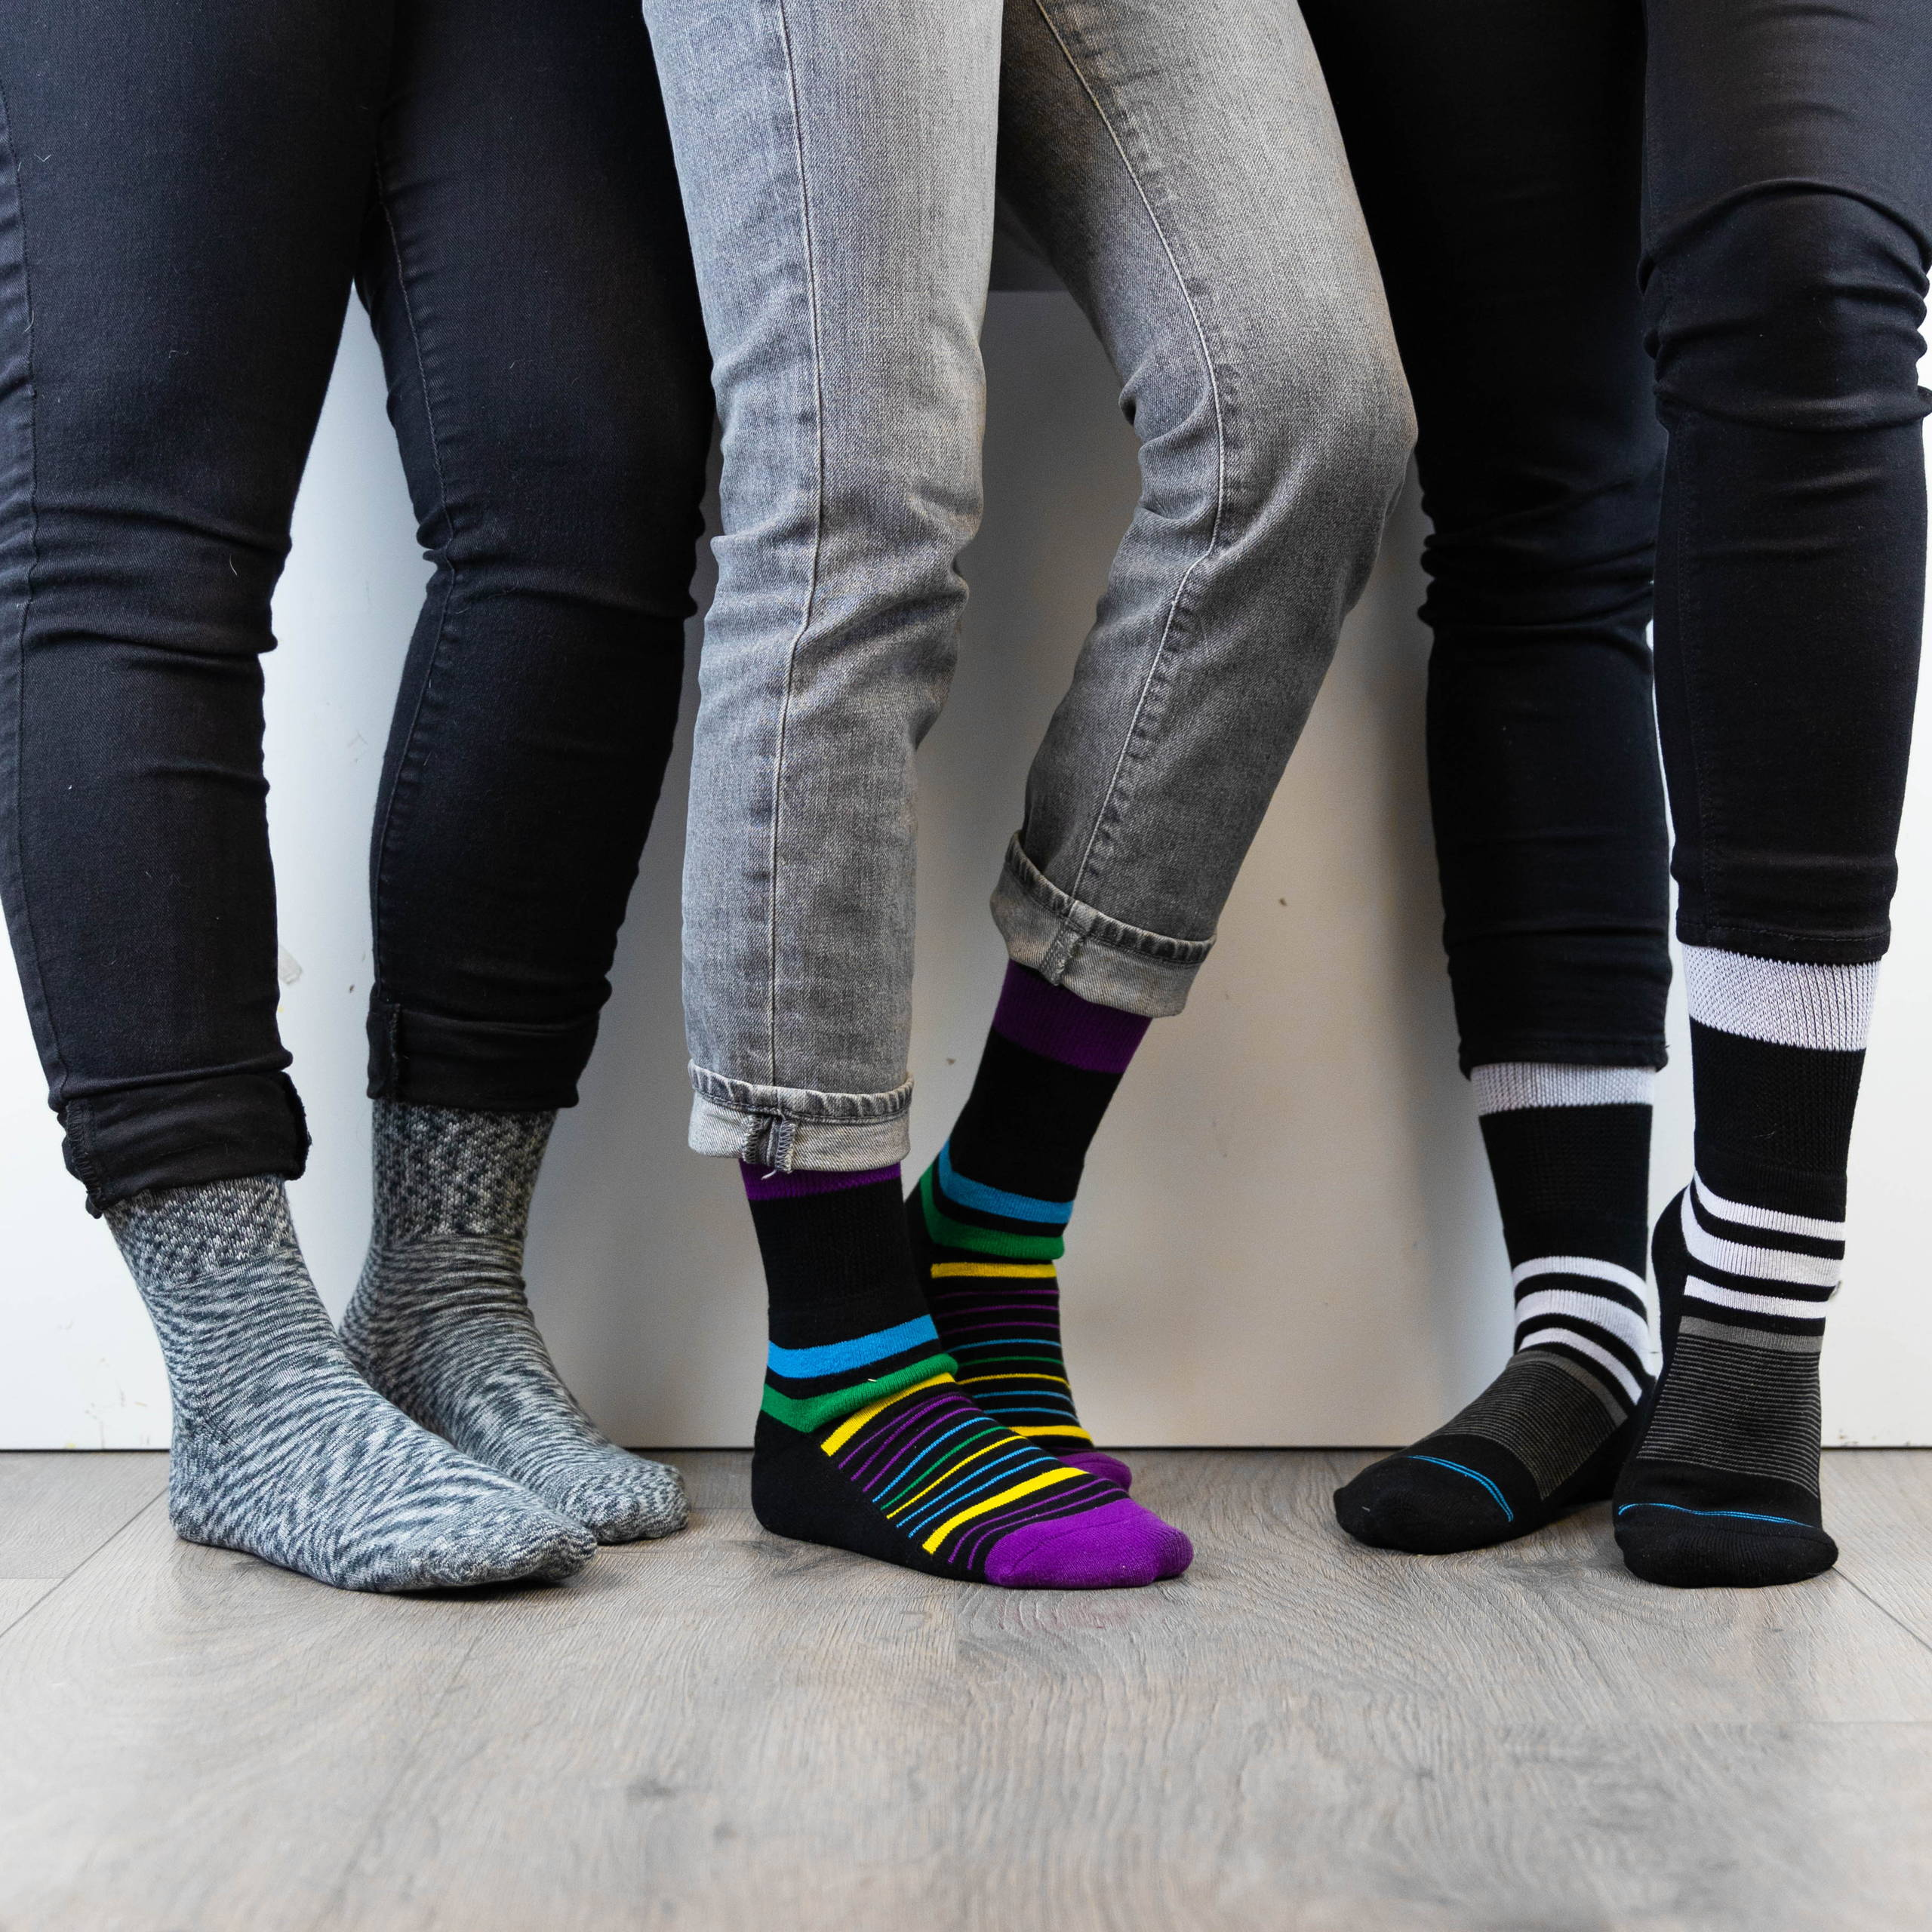 Three people standing next to eachother, all wearing Dr. Segal's diabetic socks.